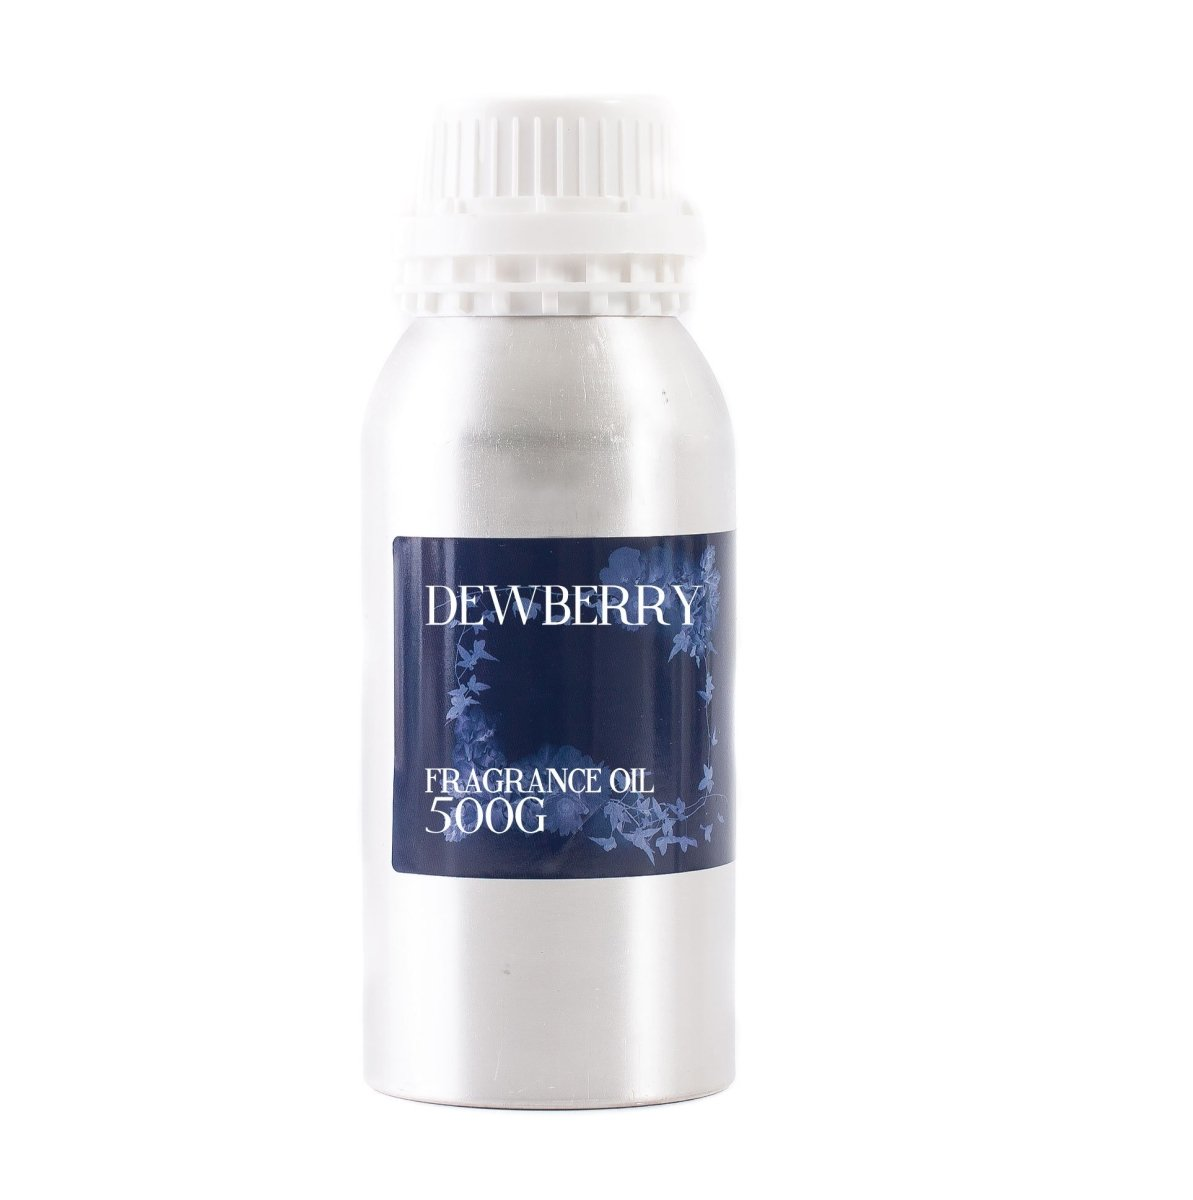 Dewberry Fragrance Oil - Mystic Moments UK